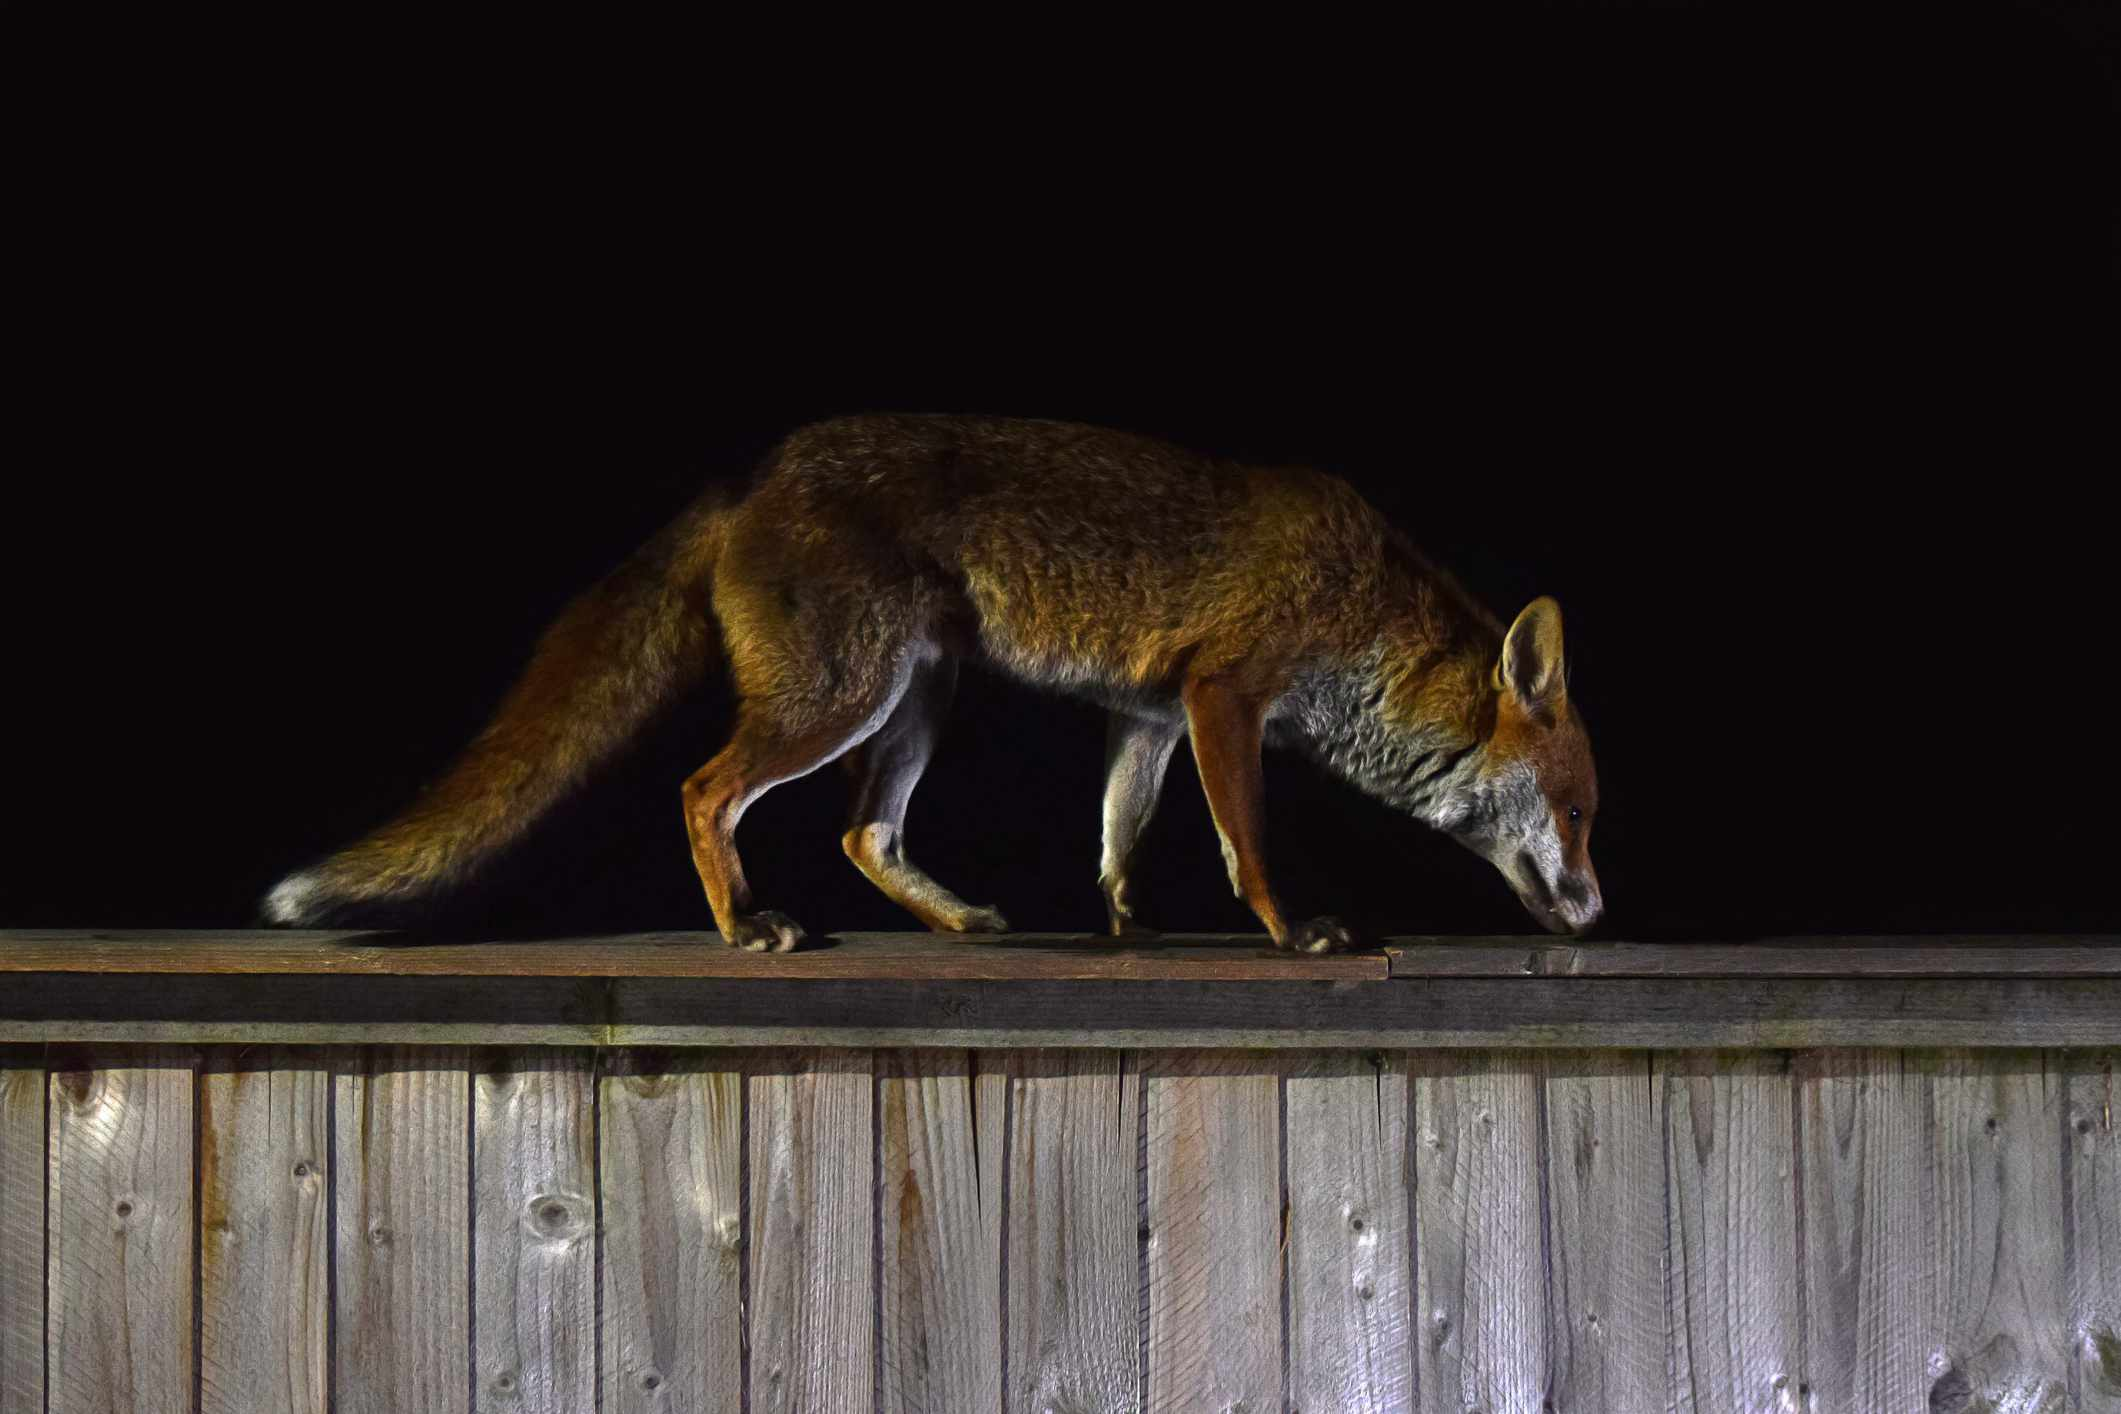 red fox climbs along fence at night